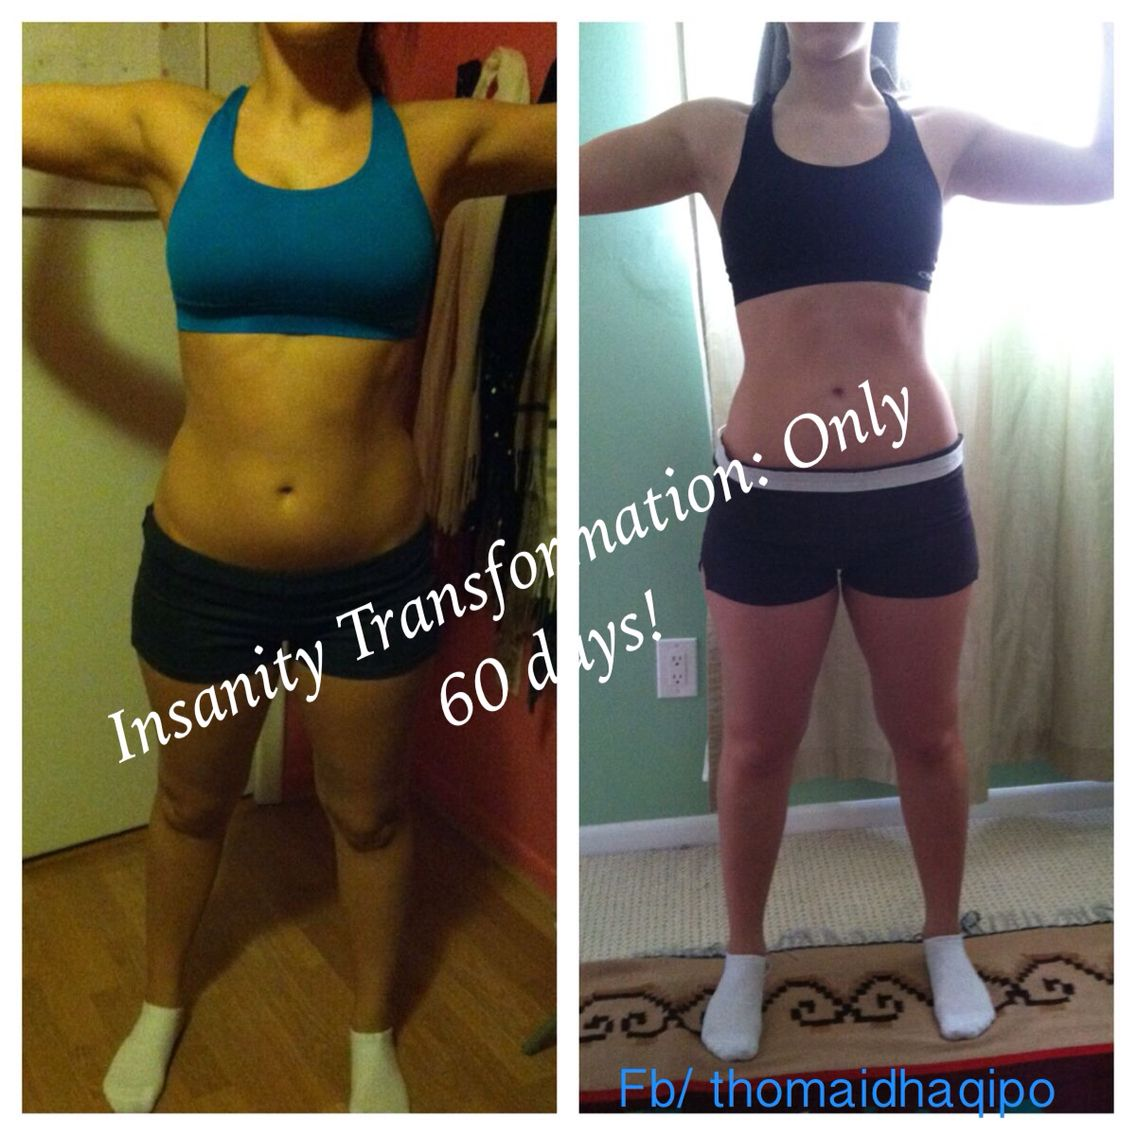 Also forskolin weight loss supplement in trinidad the